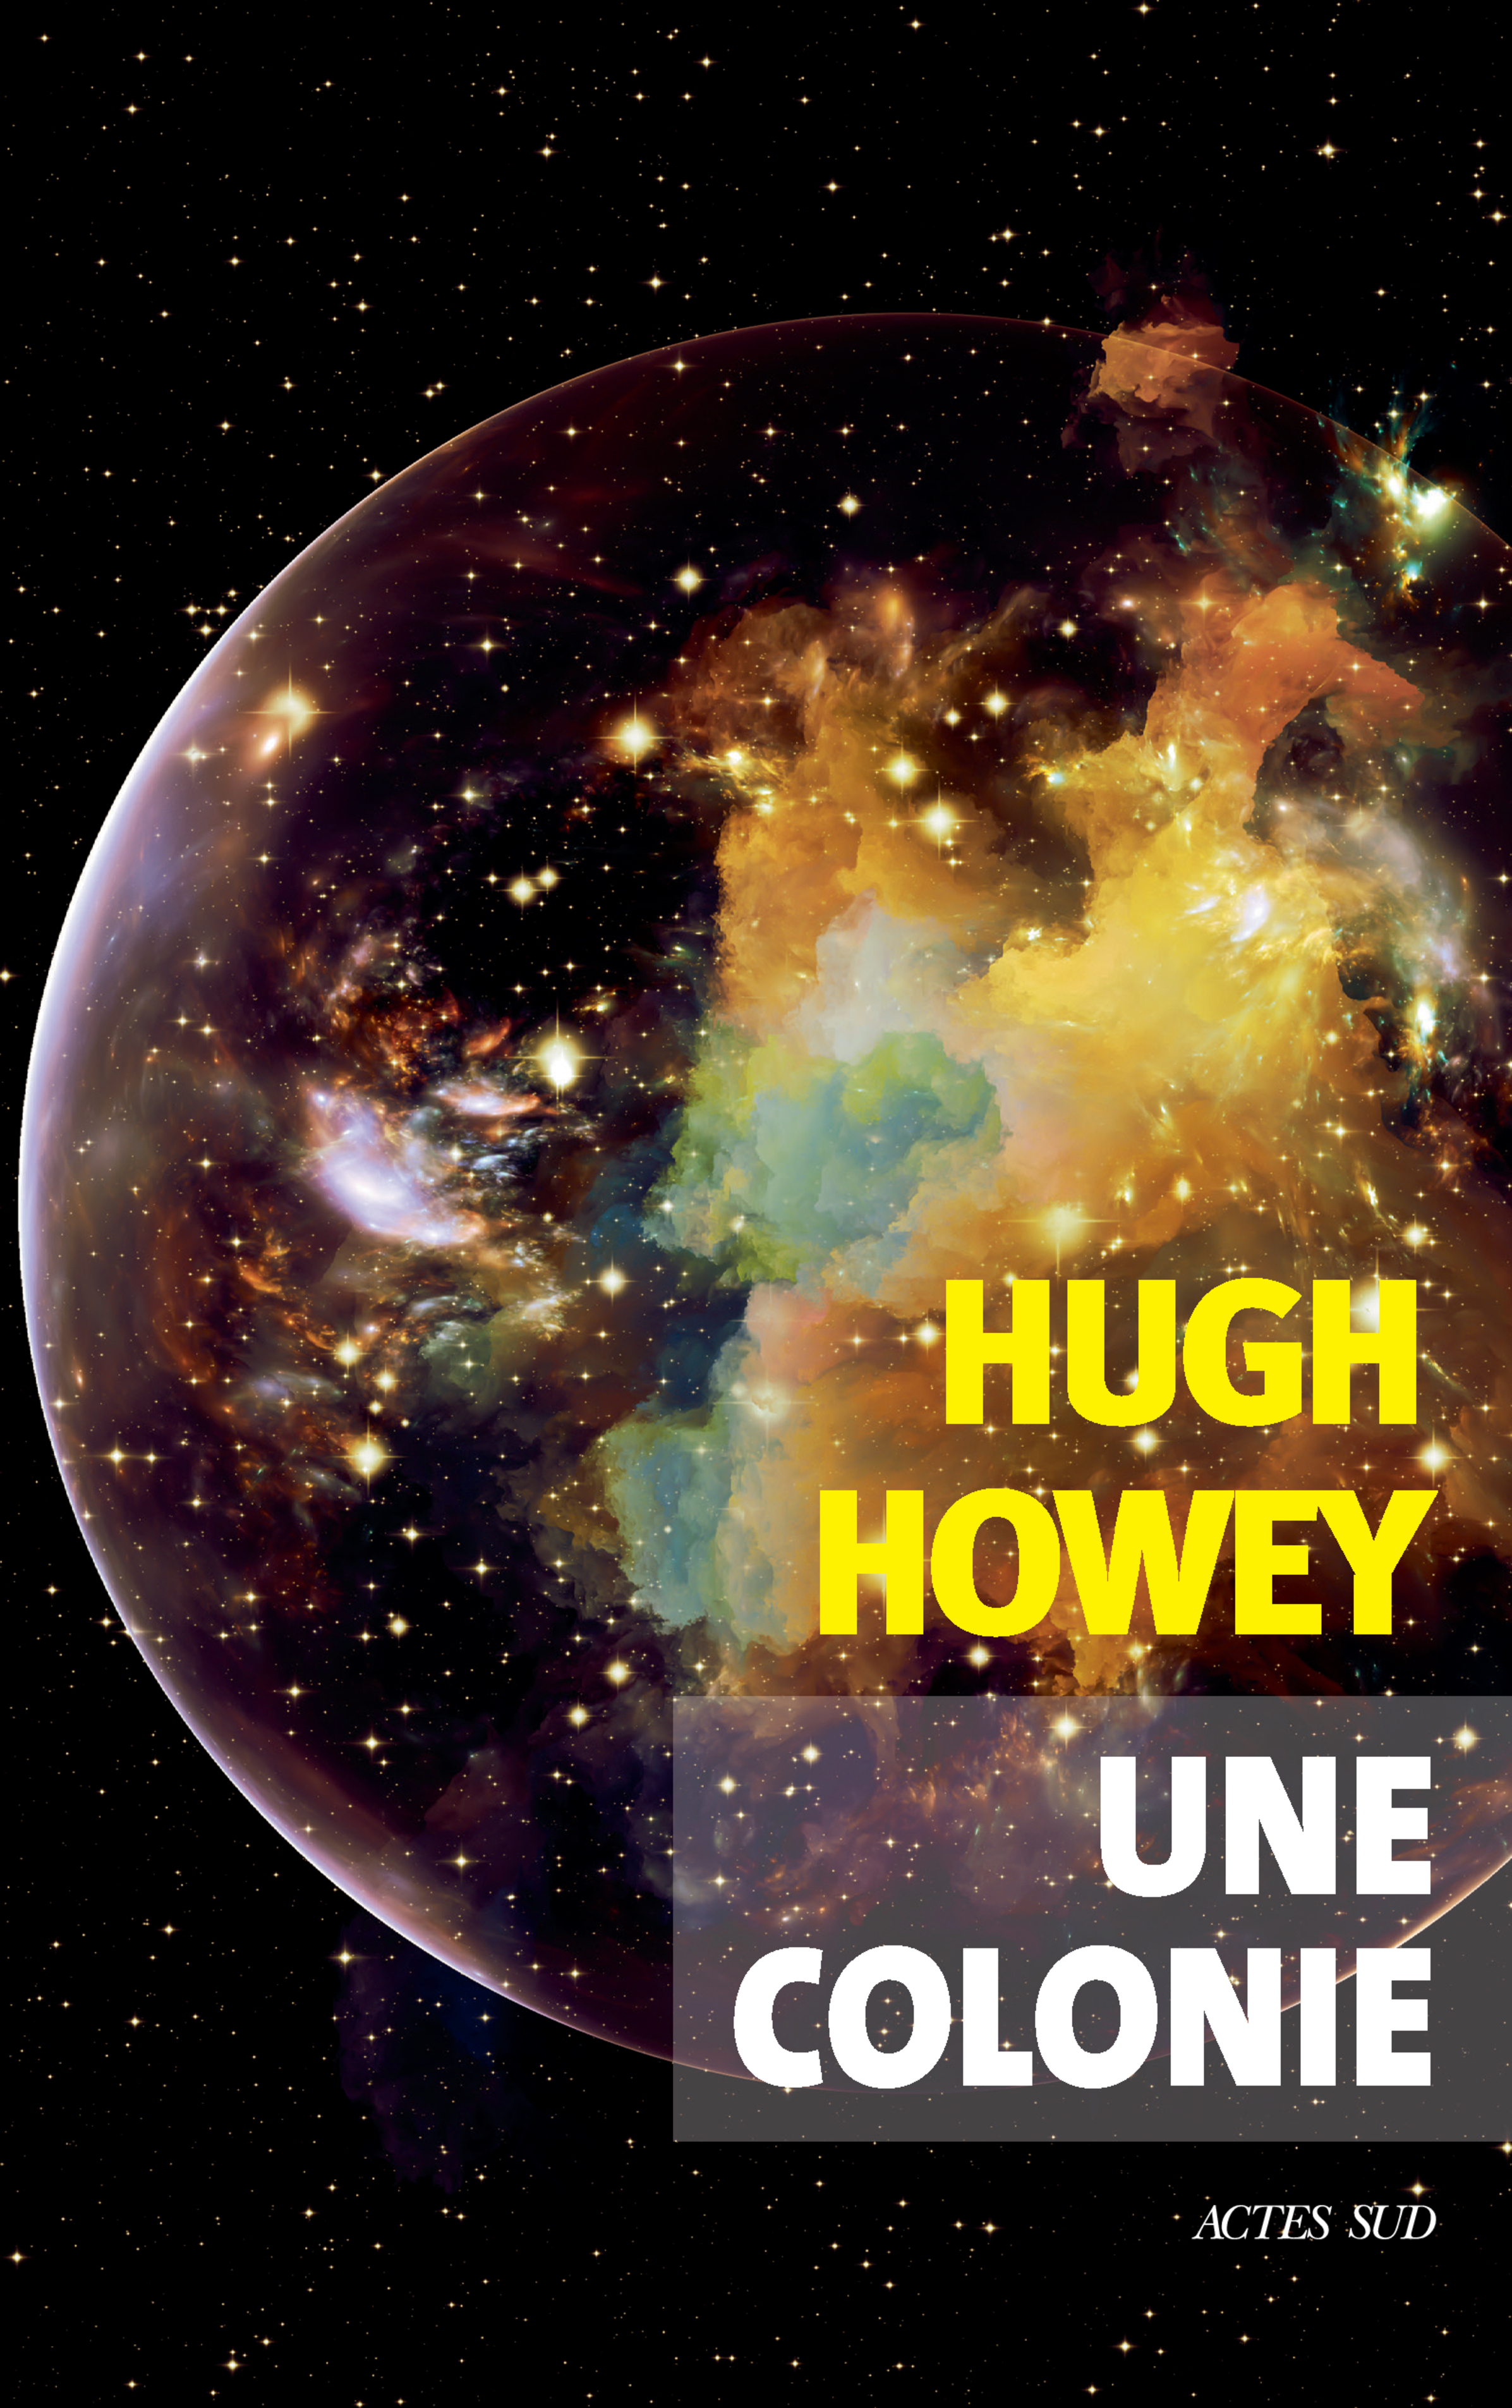 Une colonie - Hugh Howey